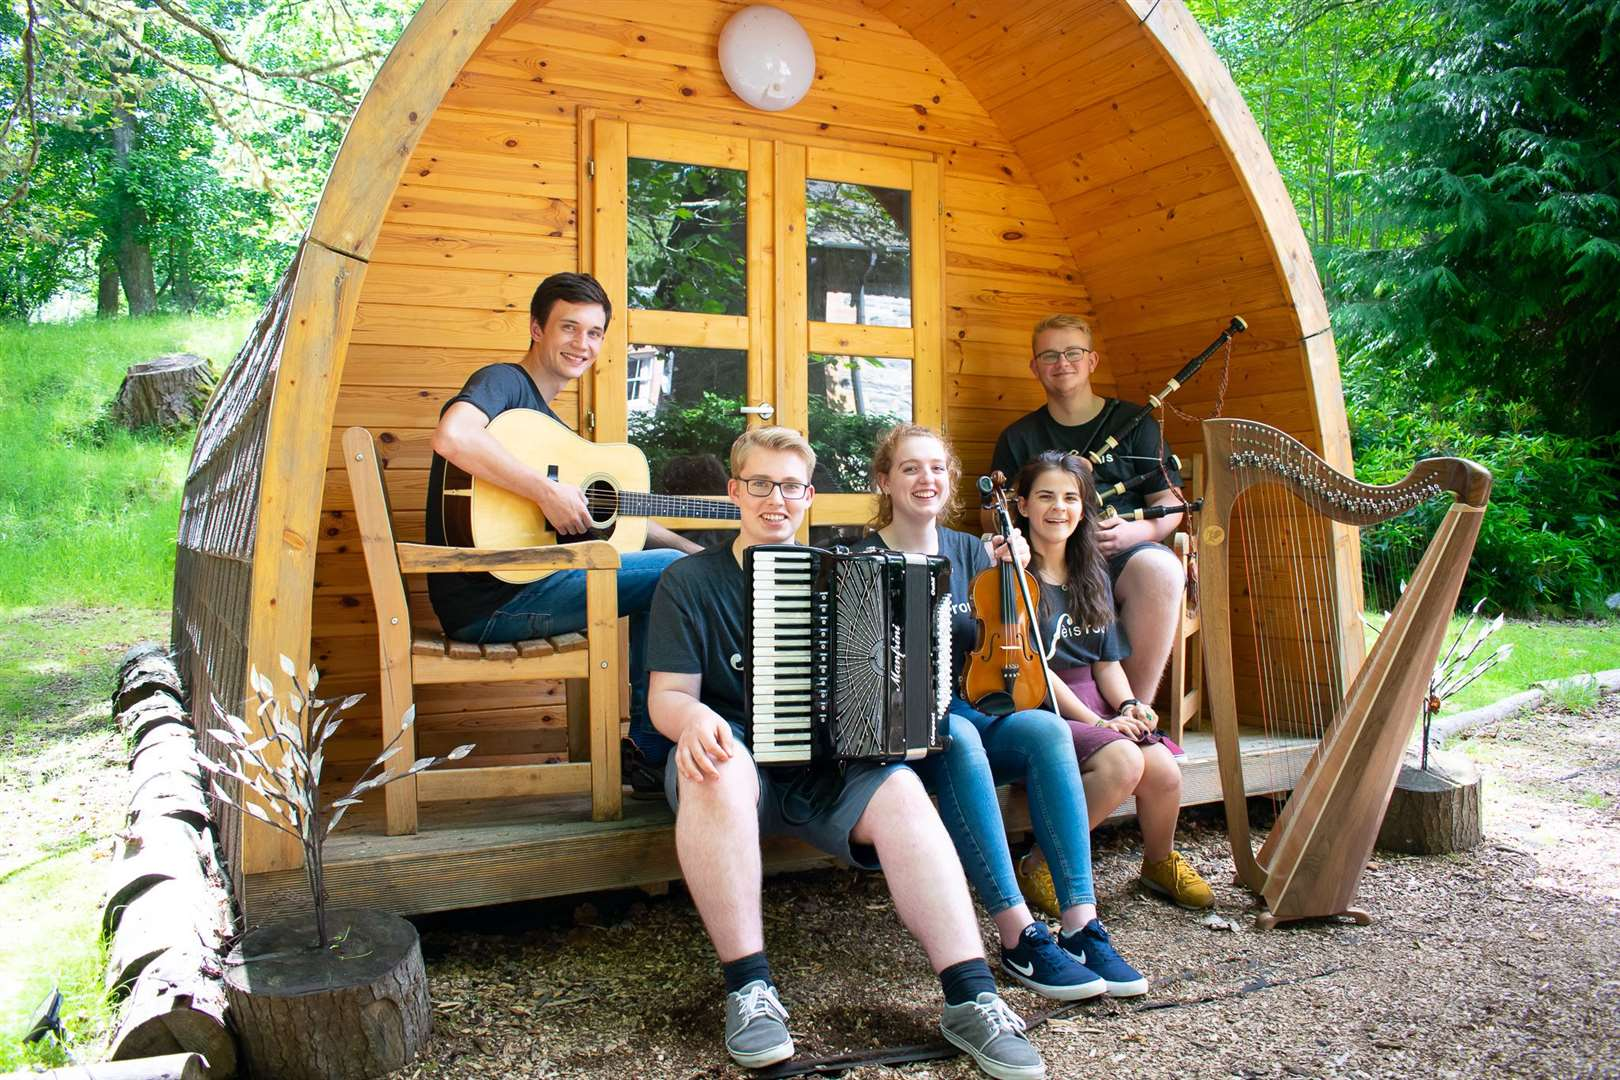 Members of the Ceilidh Trail in Sutherland will be Grace Stewart-Skinner, Beth Llewellyn (Ardgay), Ruairidh Buxton, Finlay Clarke and Duncan Ritchie.